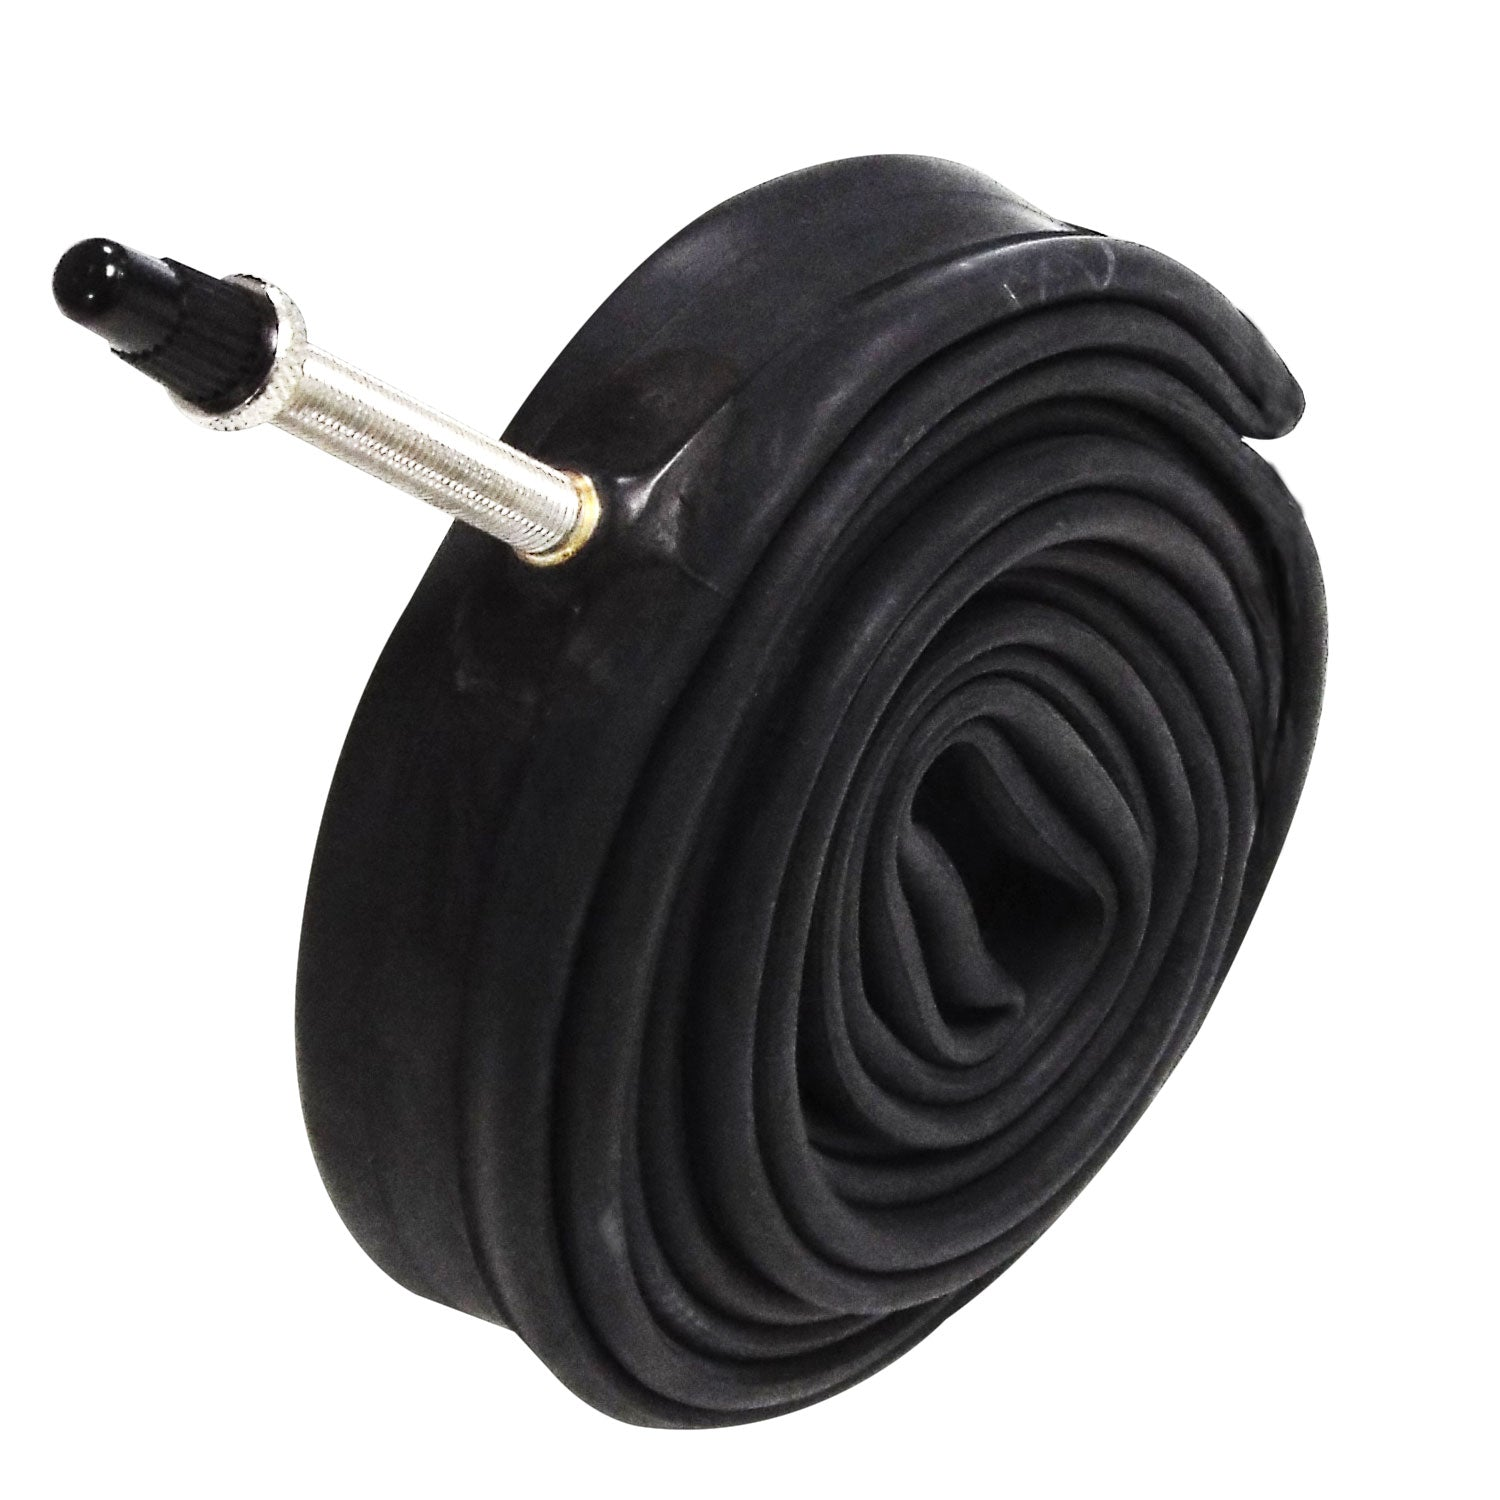 Road Inner Tube 700x25/32 Presta 48mm valve - Velochampion